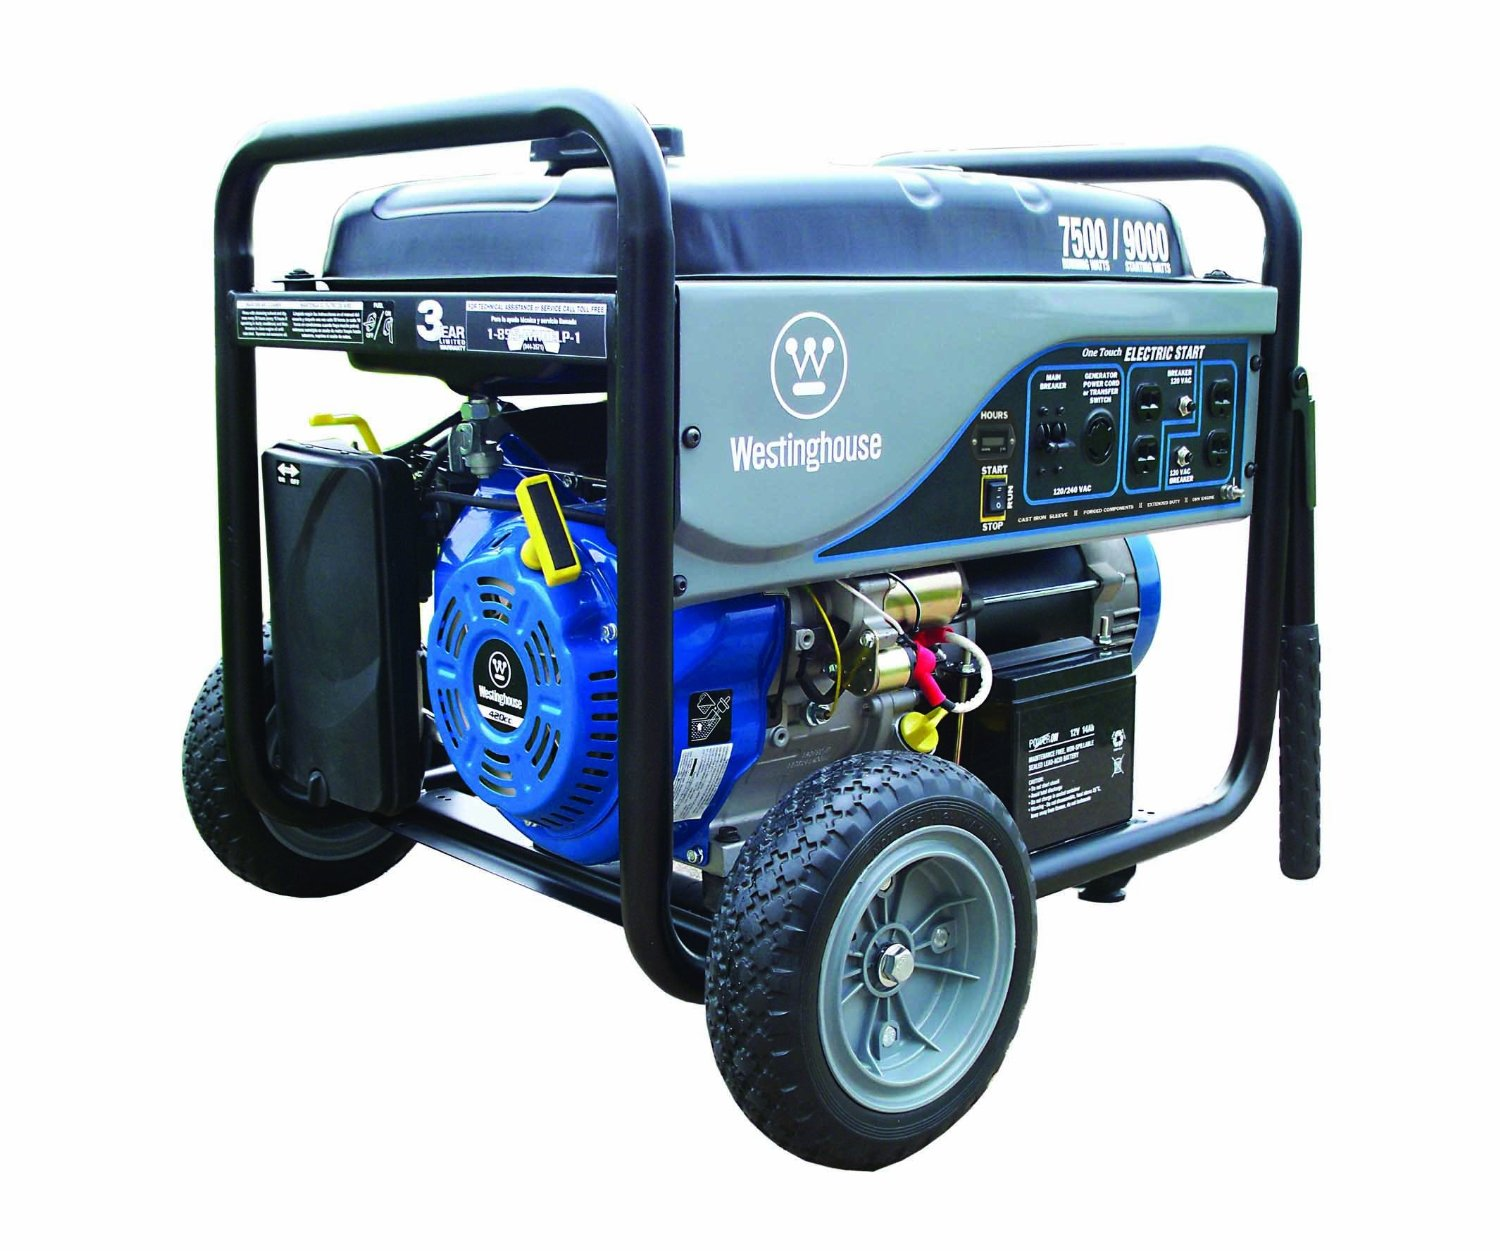 Westinghouse WH7500E portable generator – Review - Welder Referer